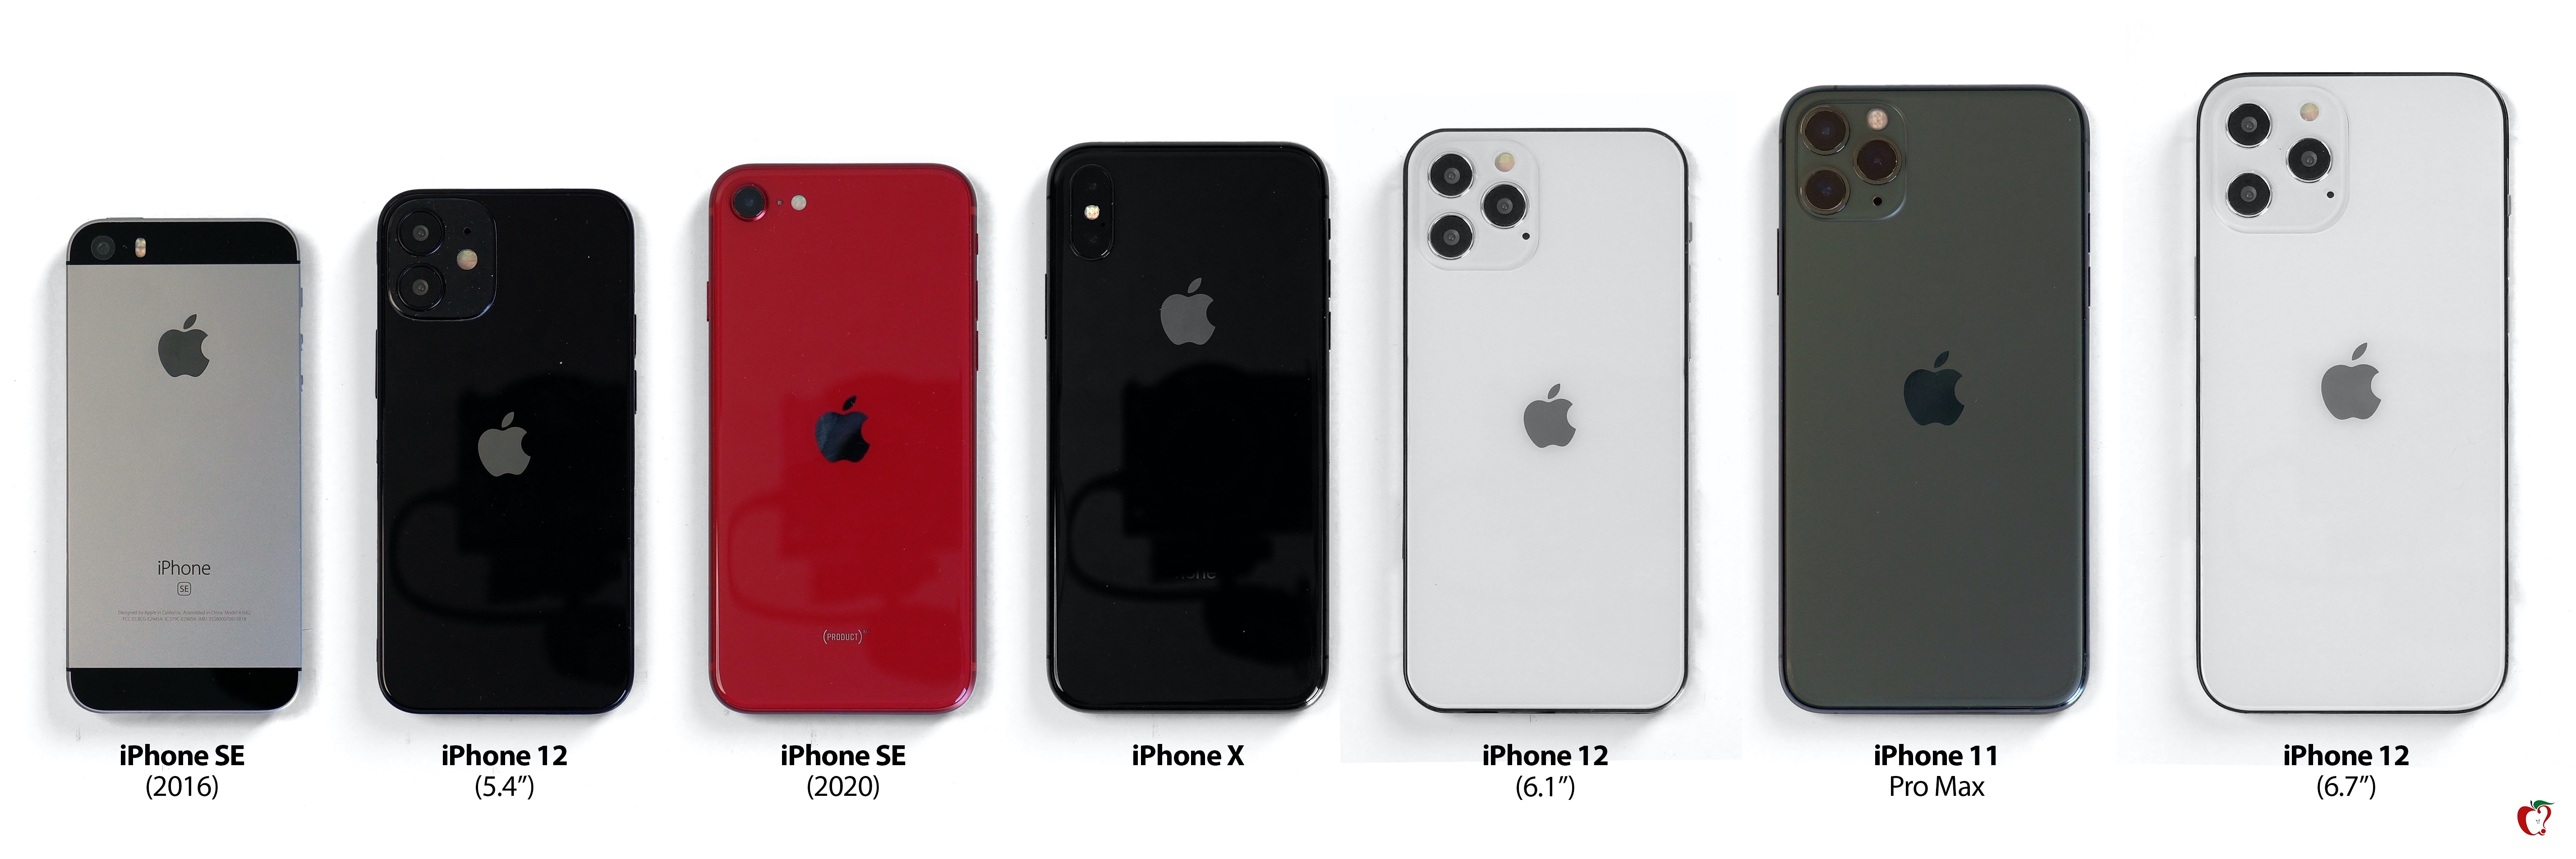 iPhone 12 Sizes Compared with iPhone SE, 7, 8, SE 2, X, 11 ...